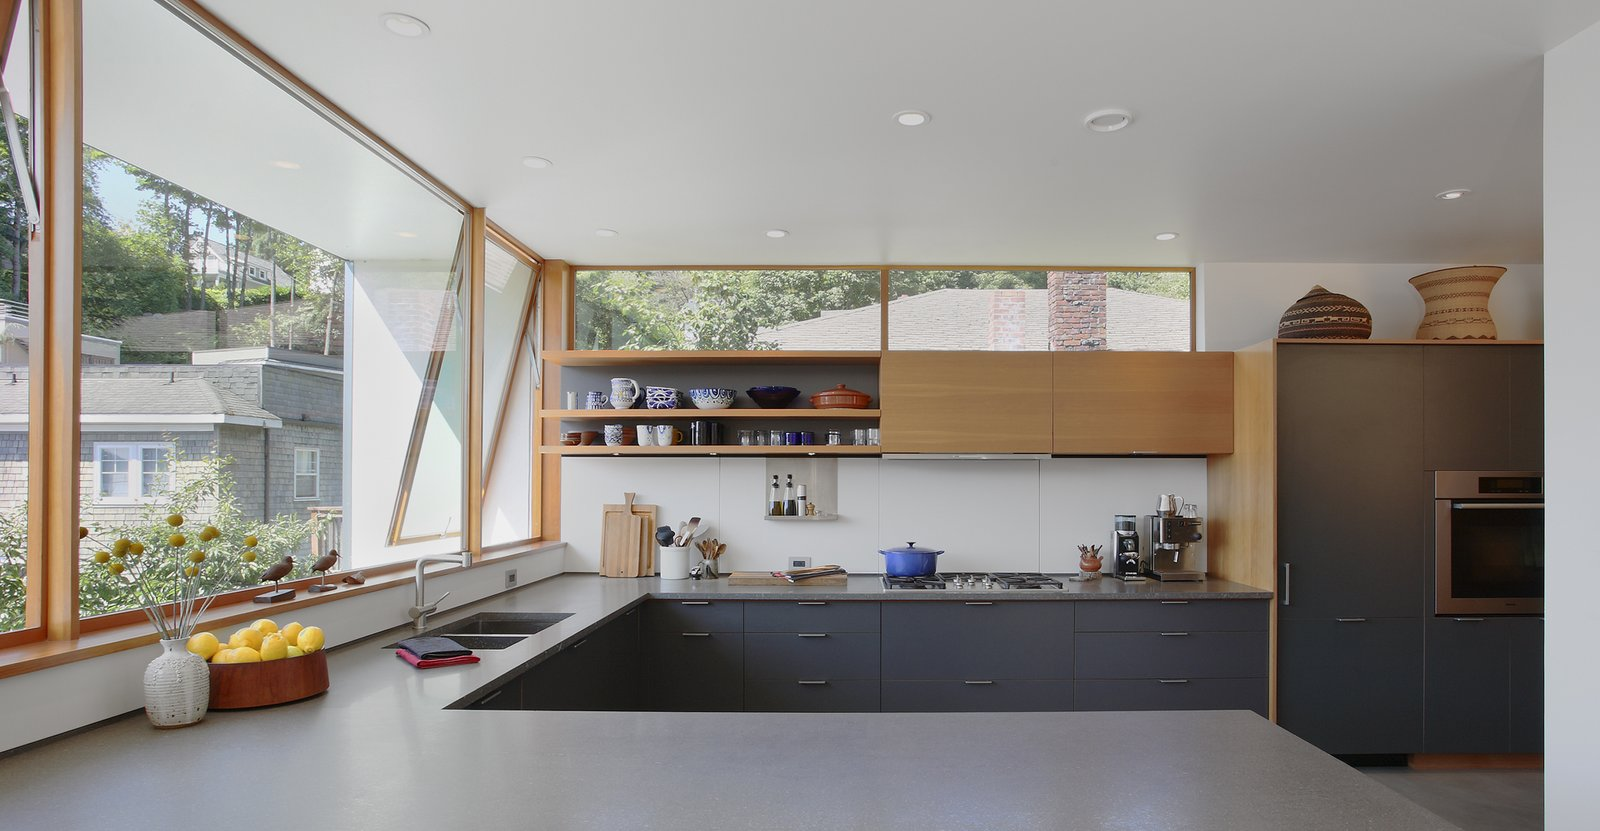 Kitchen For this kitchen, the architects paired slate-gray HPL (high-pressure laminate) cabinets by Henrybuilt, cool Basaltina countertops, with custom shelving and a white Corian backsplash.  Best Photos from Seattle Home Carefully Blocks Out Neighbors, While Celebrating Natural Surroundings